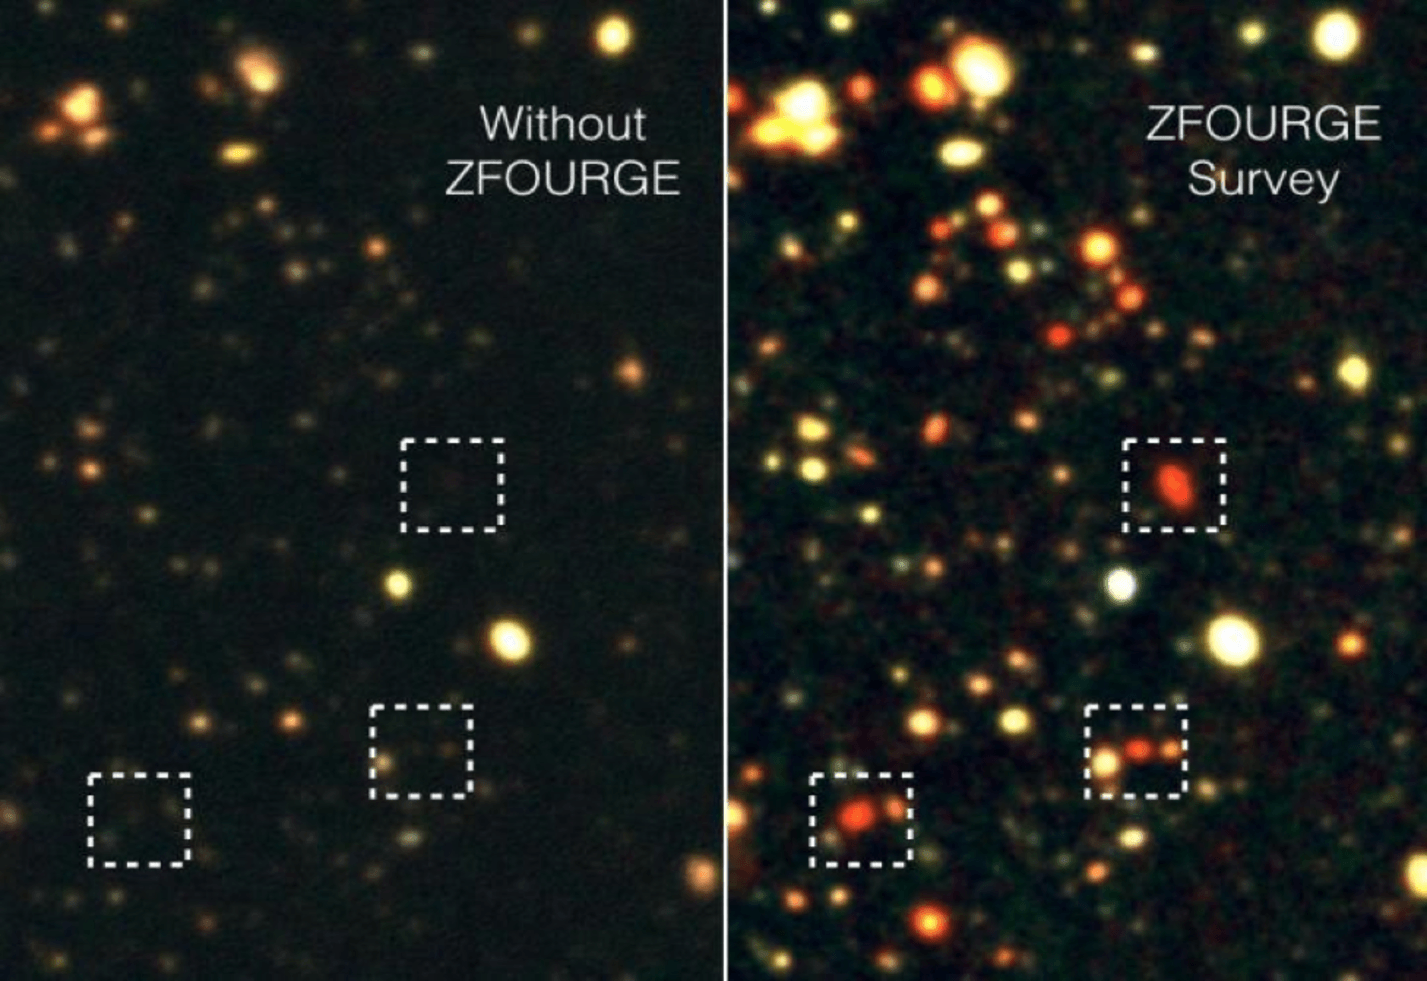 A comparison of visualising galaxies with and without ZFOURGE.